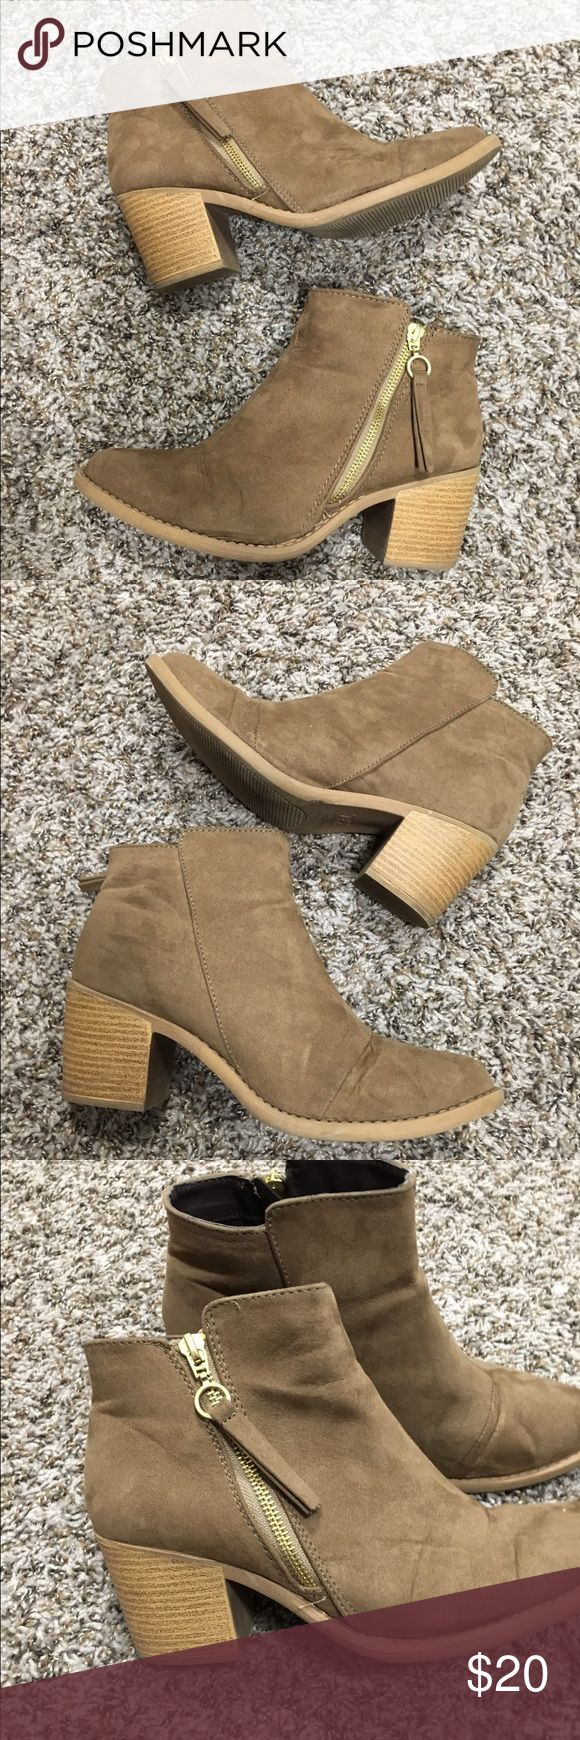 Qupid Tan booties Tan booties. Zippers are on the outside - super cute! Very comfortable. Pre-loved but still in great condition! Qupid Shoes Ankle Boots & Booties